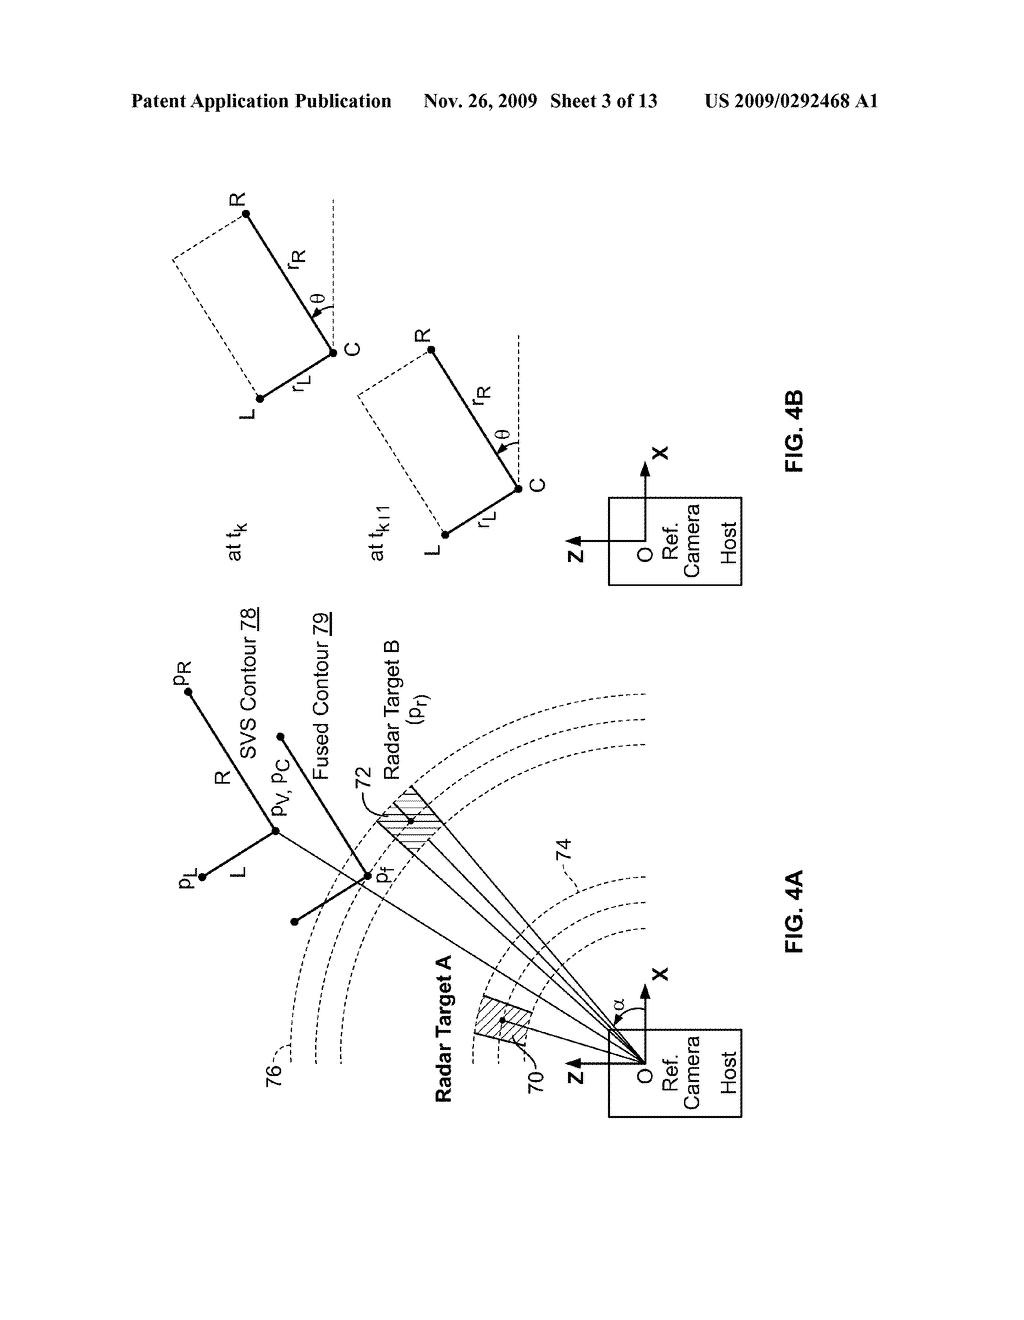 COLLISION AVOIDANCE METHOD AND SYSTEM USING STEREO VISION AND RADAR